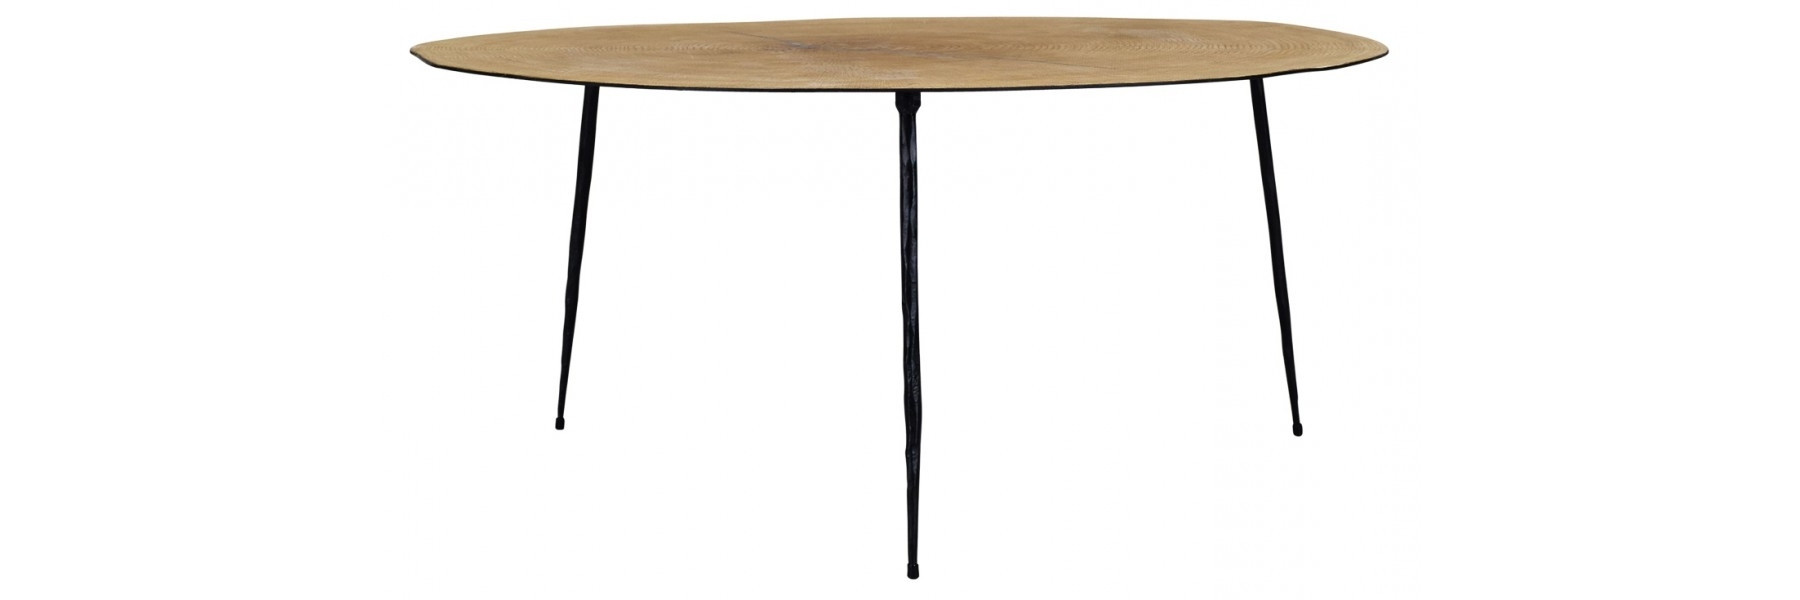 Famous Parker Oval Marble Coffee Tables Inside July Coffee Table Tall (View 3 of 20)